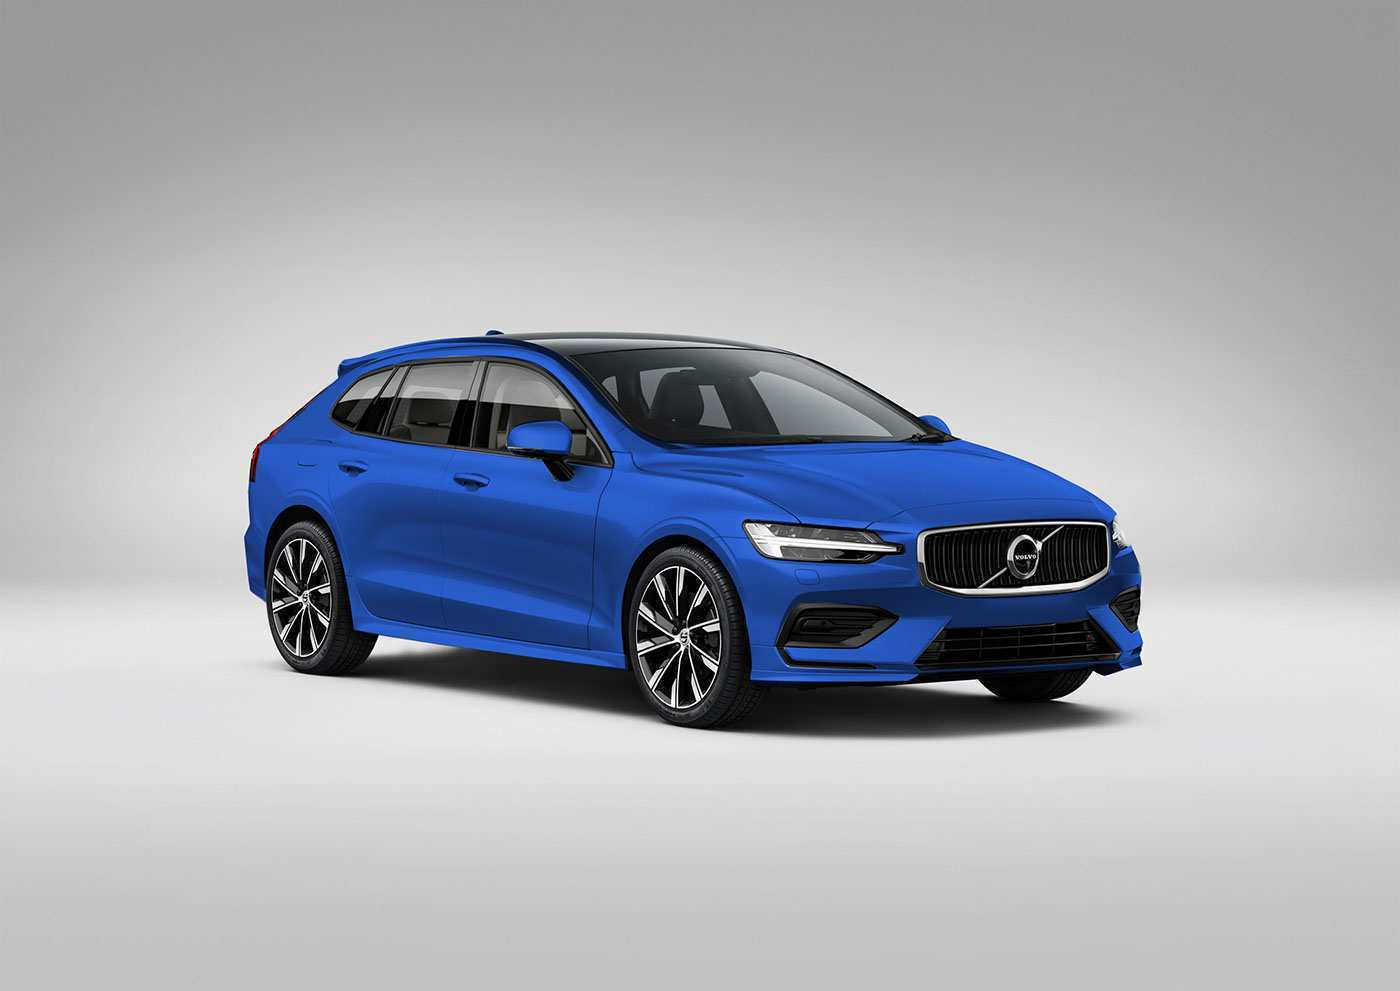 55 The Best V40 Volvo 2019 Exterior And Interior